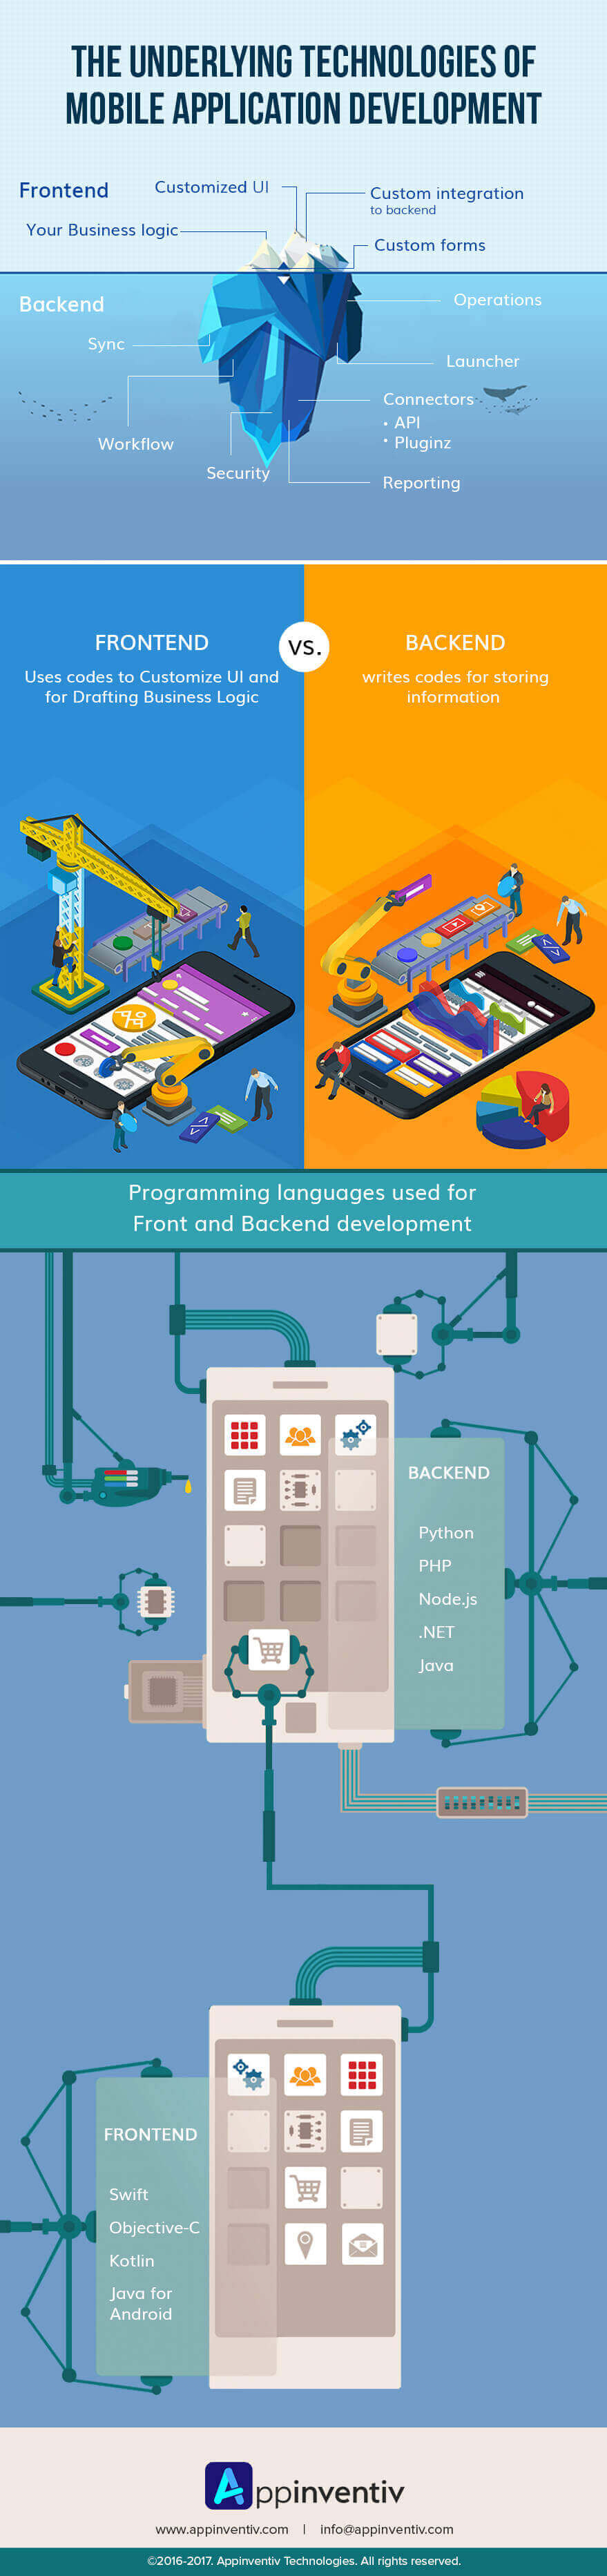 The Underlying Technologies of Mobile Application Development